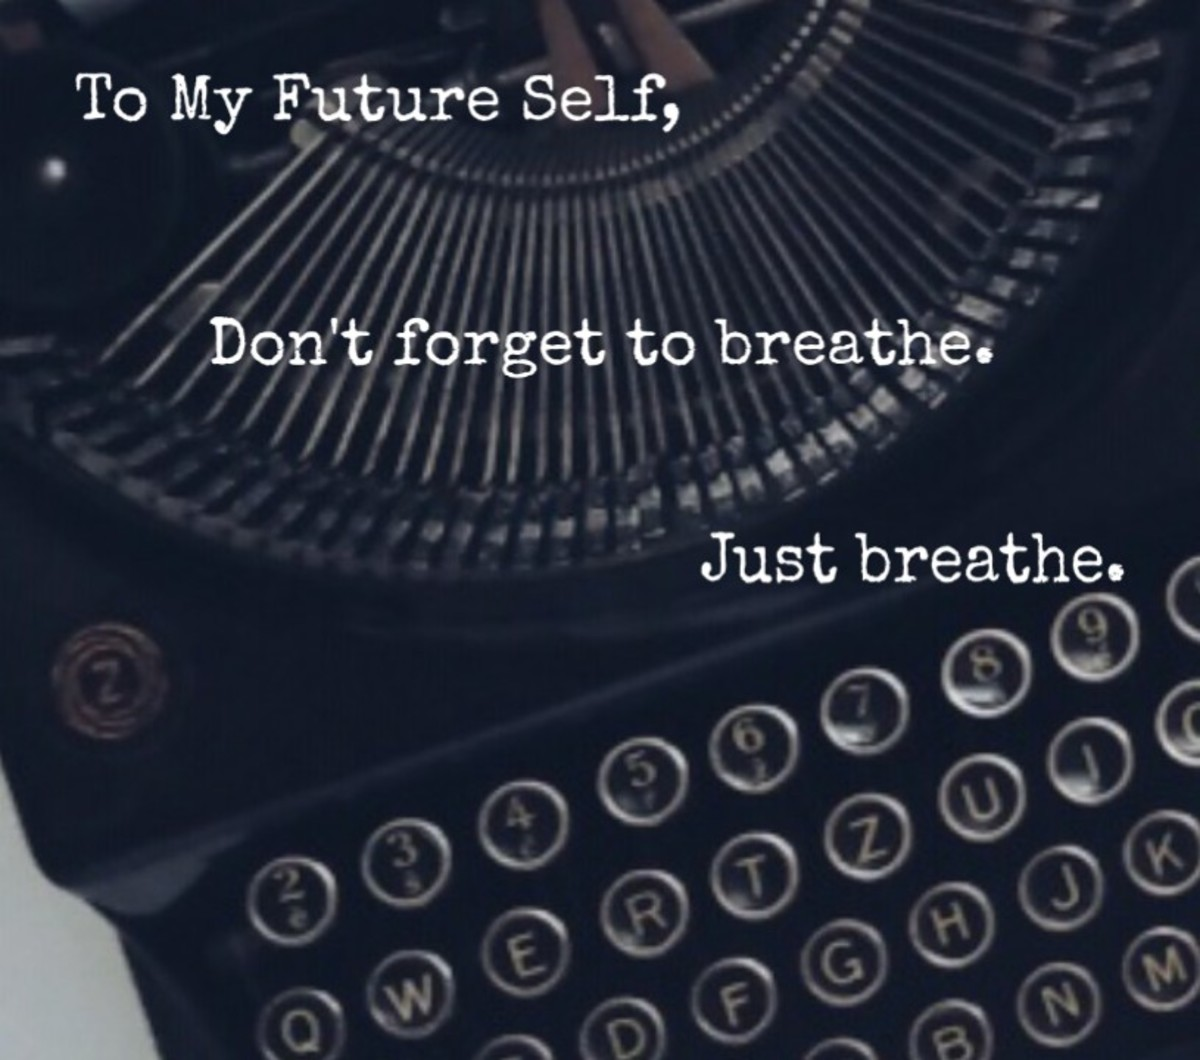 letters-to-the-future-1-to-my-future-self